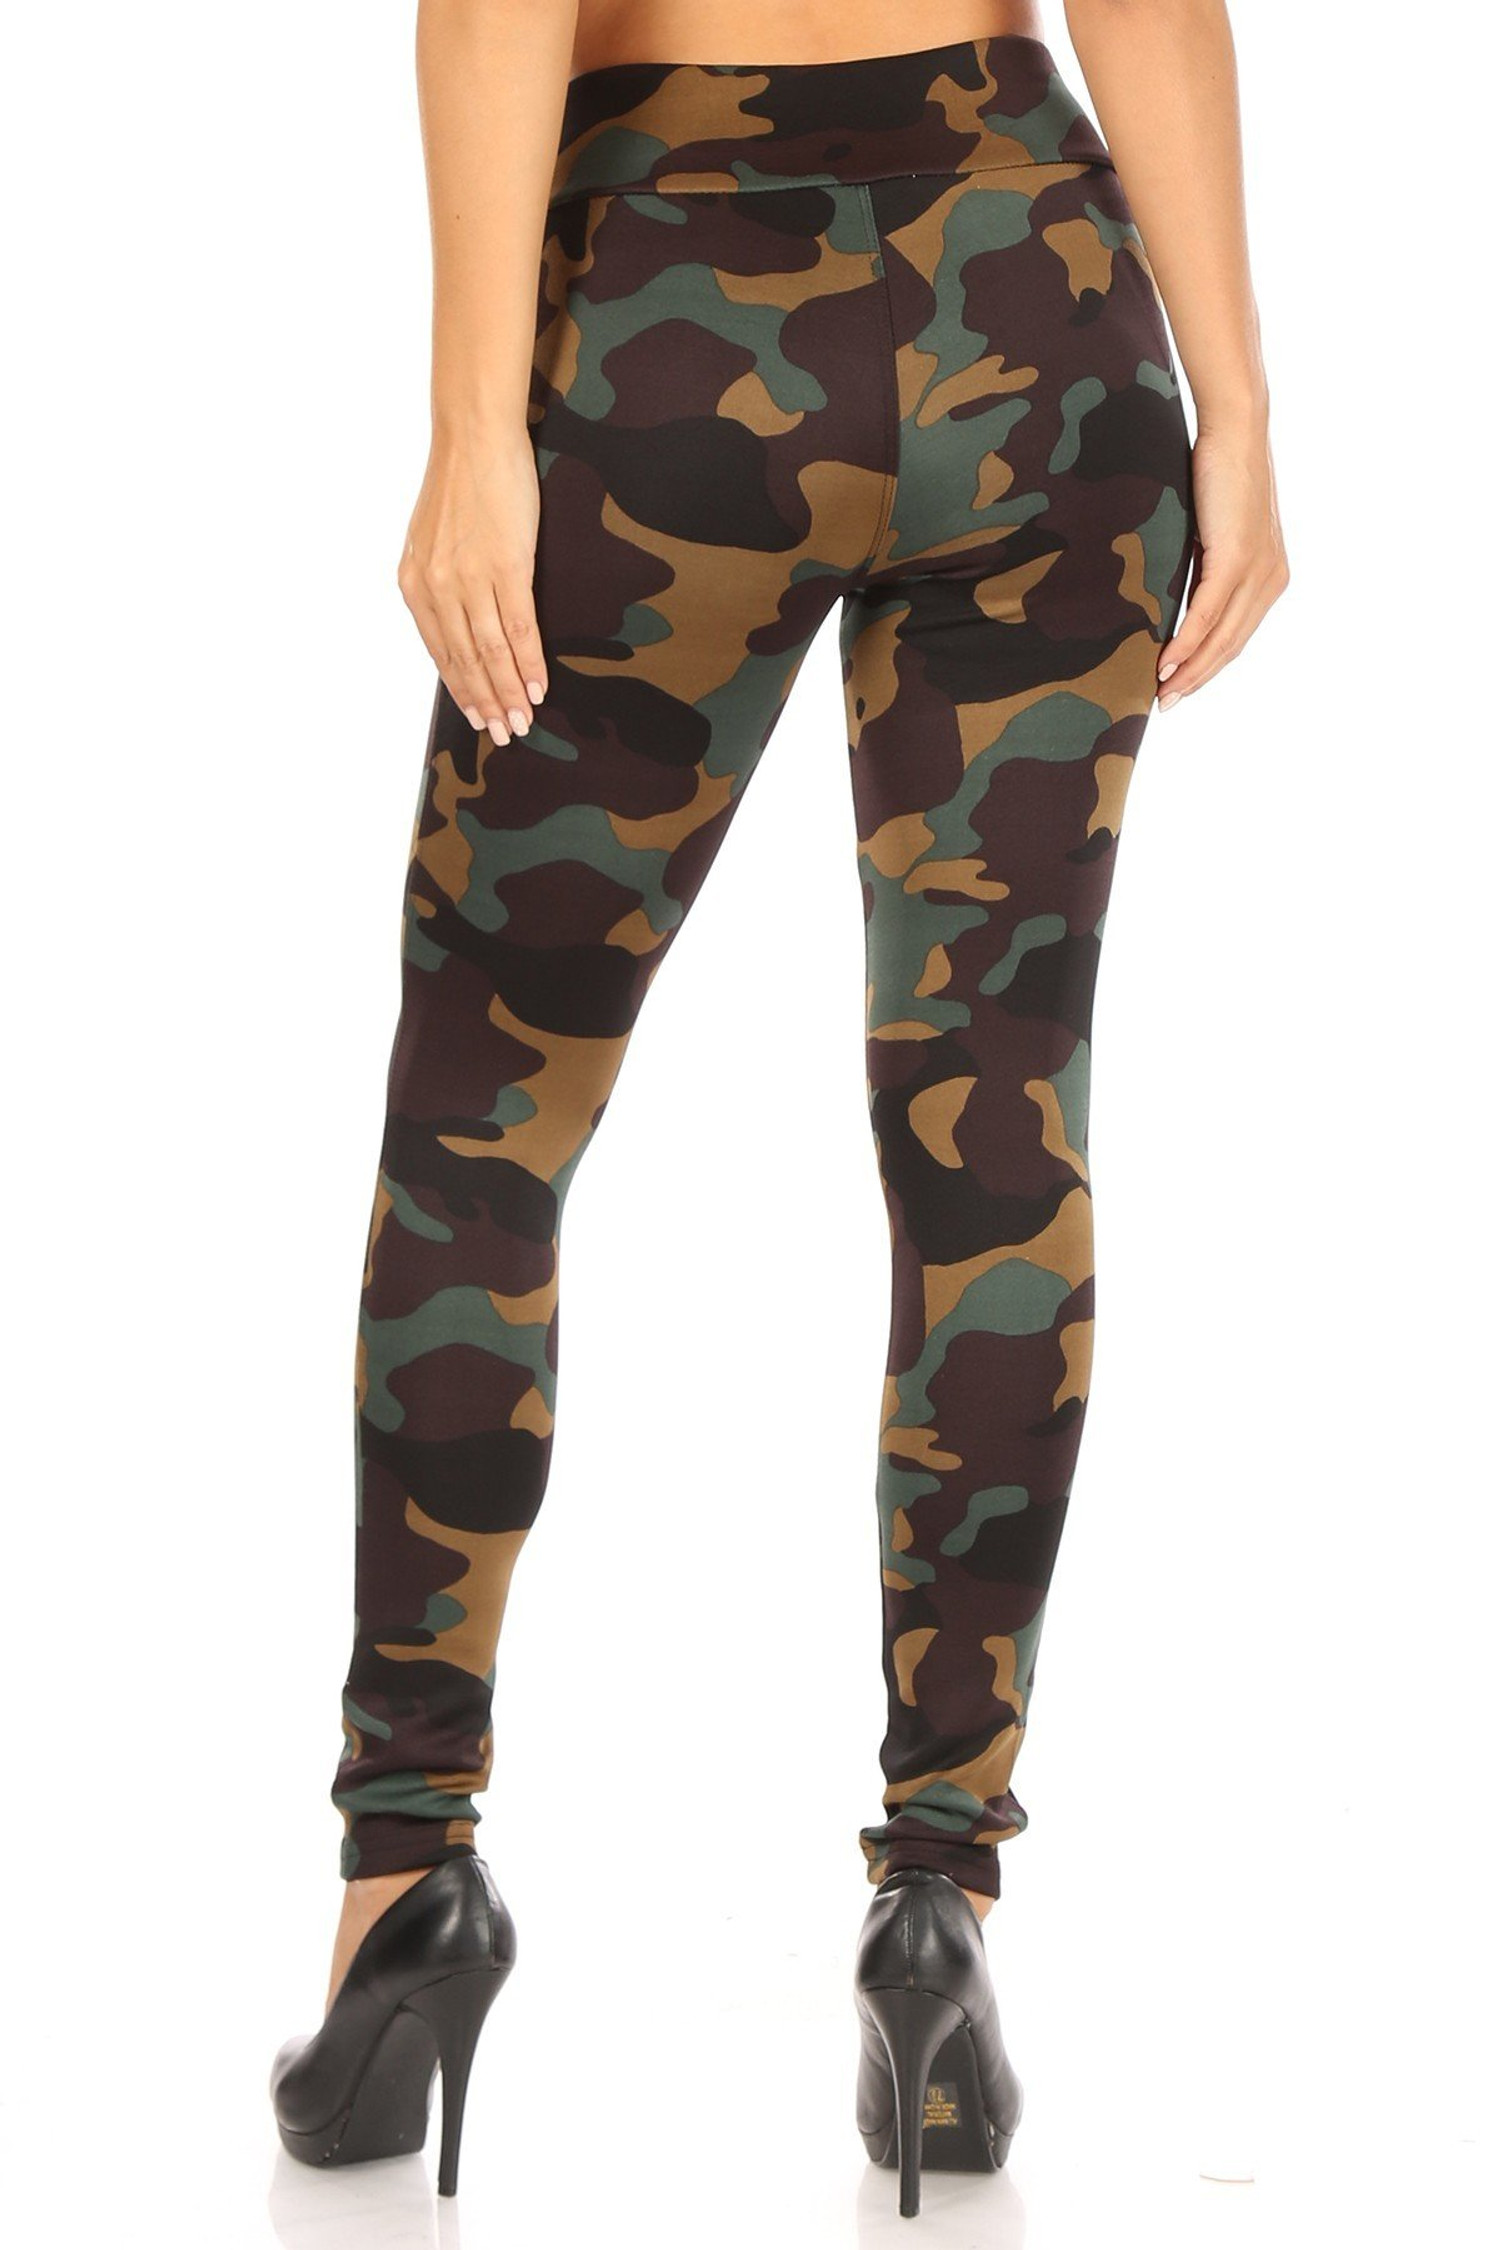 Brown Camouflage High Waisted Treggings with Zipper Accent Pockets